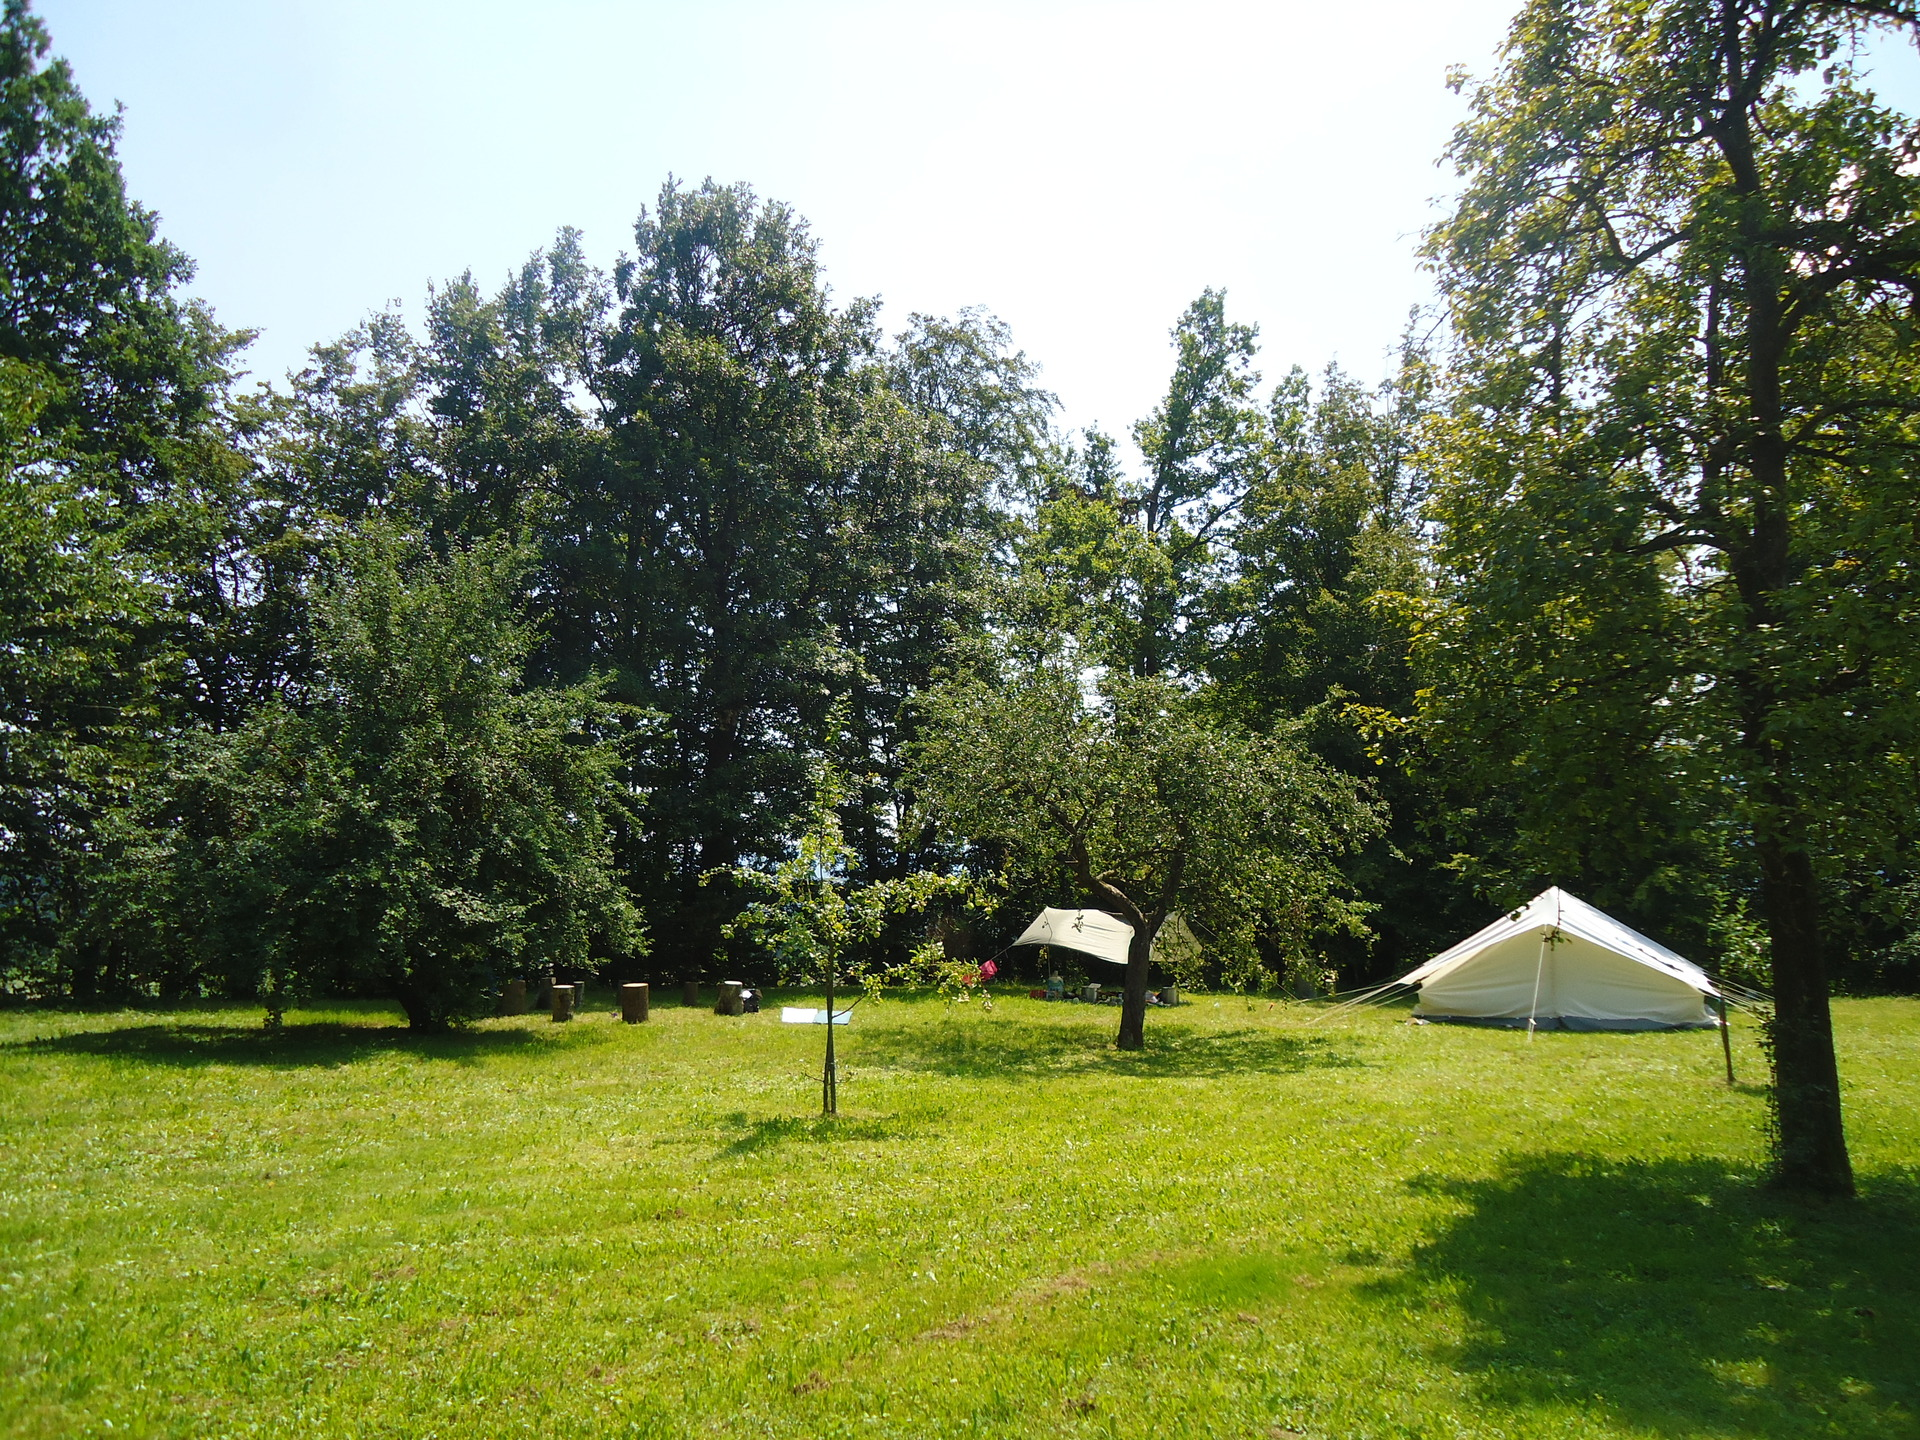 A picture of the green trees and a couple tents